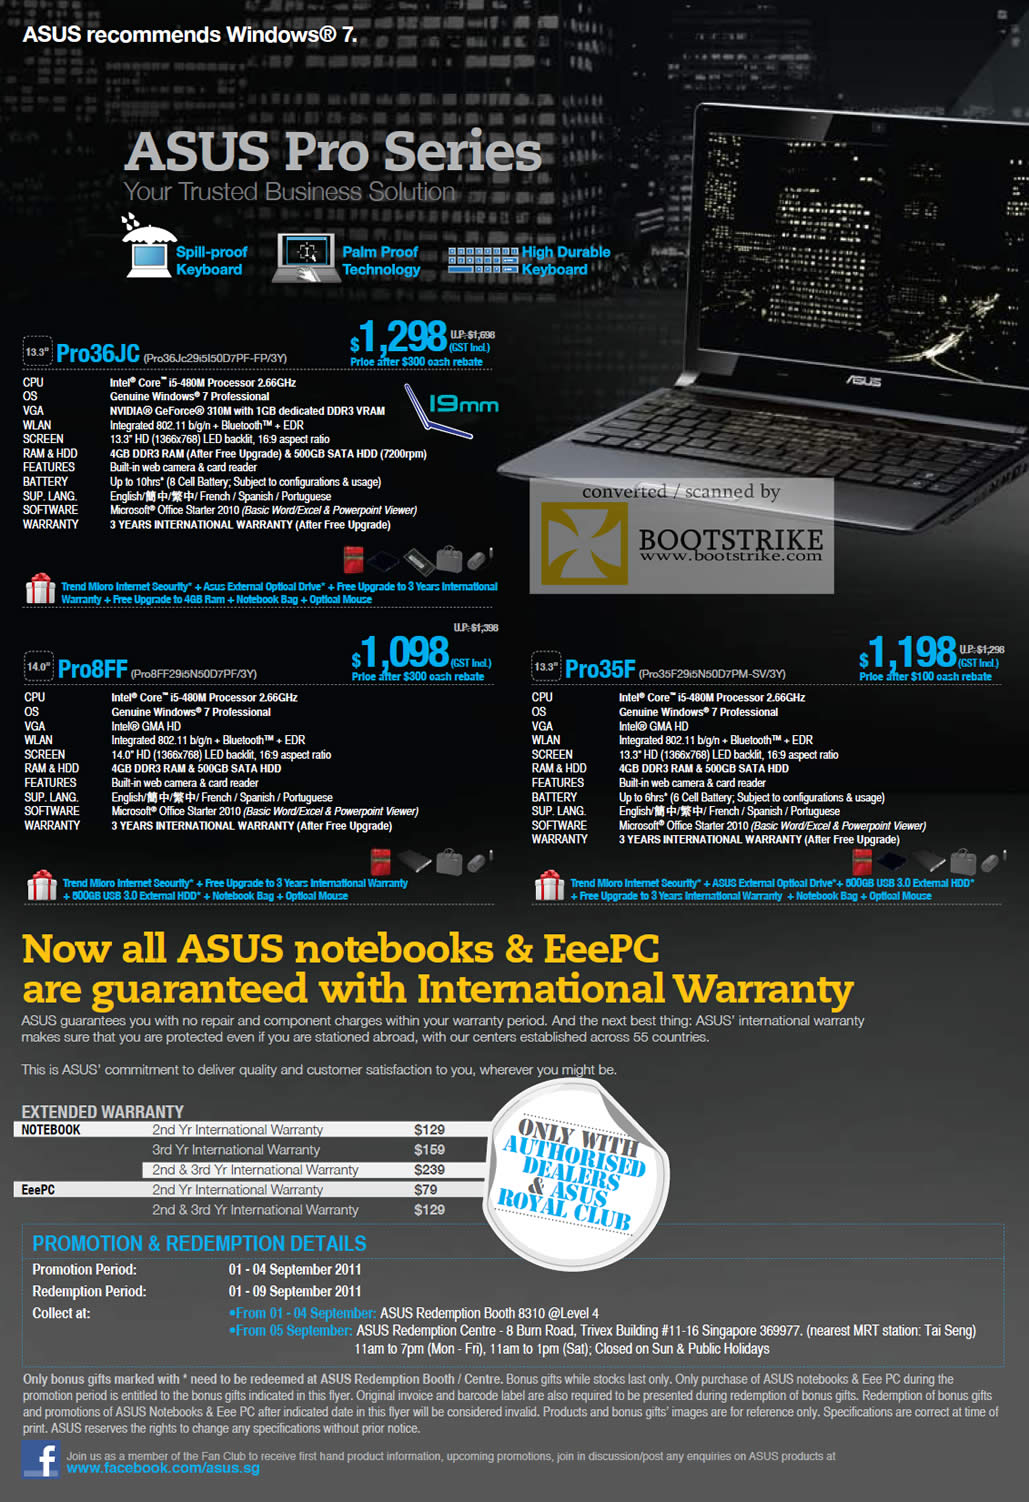 COMEX 2011 price list image brochure of ASUS Notebooks Pro Series Pro36JC Pro8FF Pro35F Extended Warranty